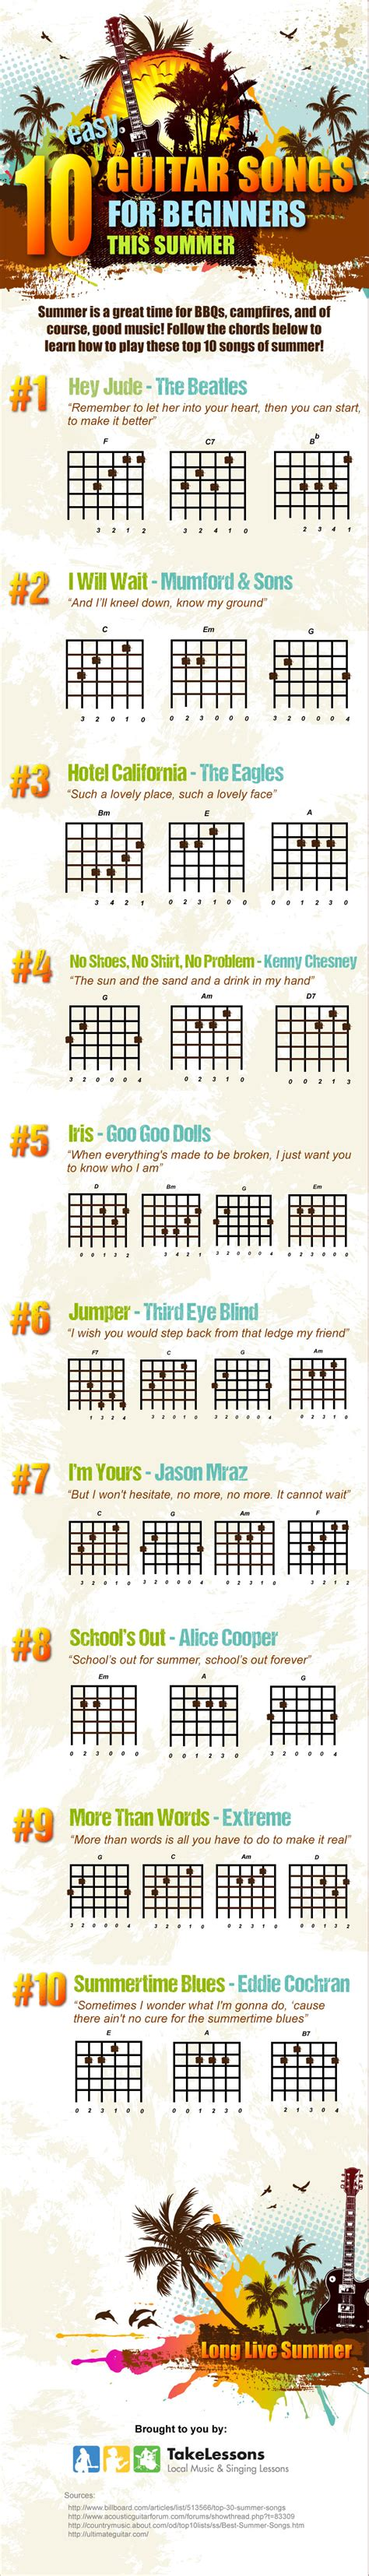 guitar tutorial acoustic songs 10 easy guitar songs for beginners this summer infographic